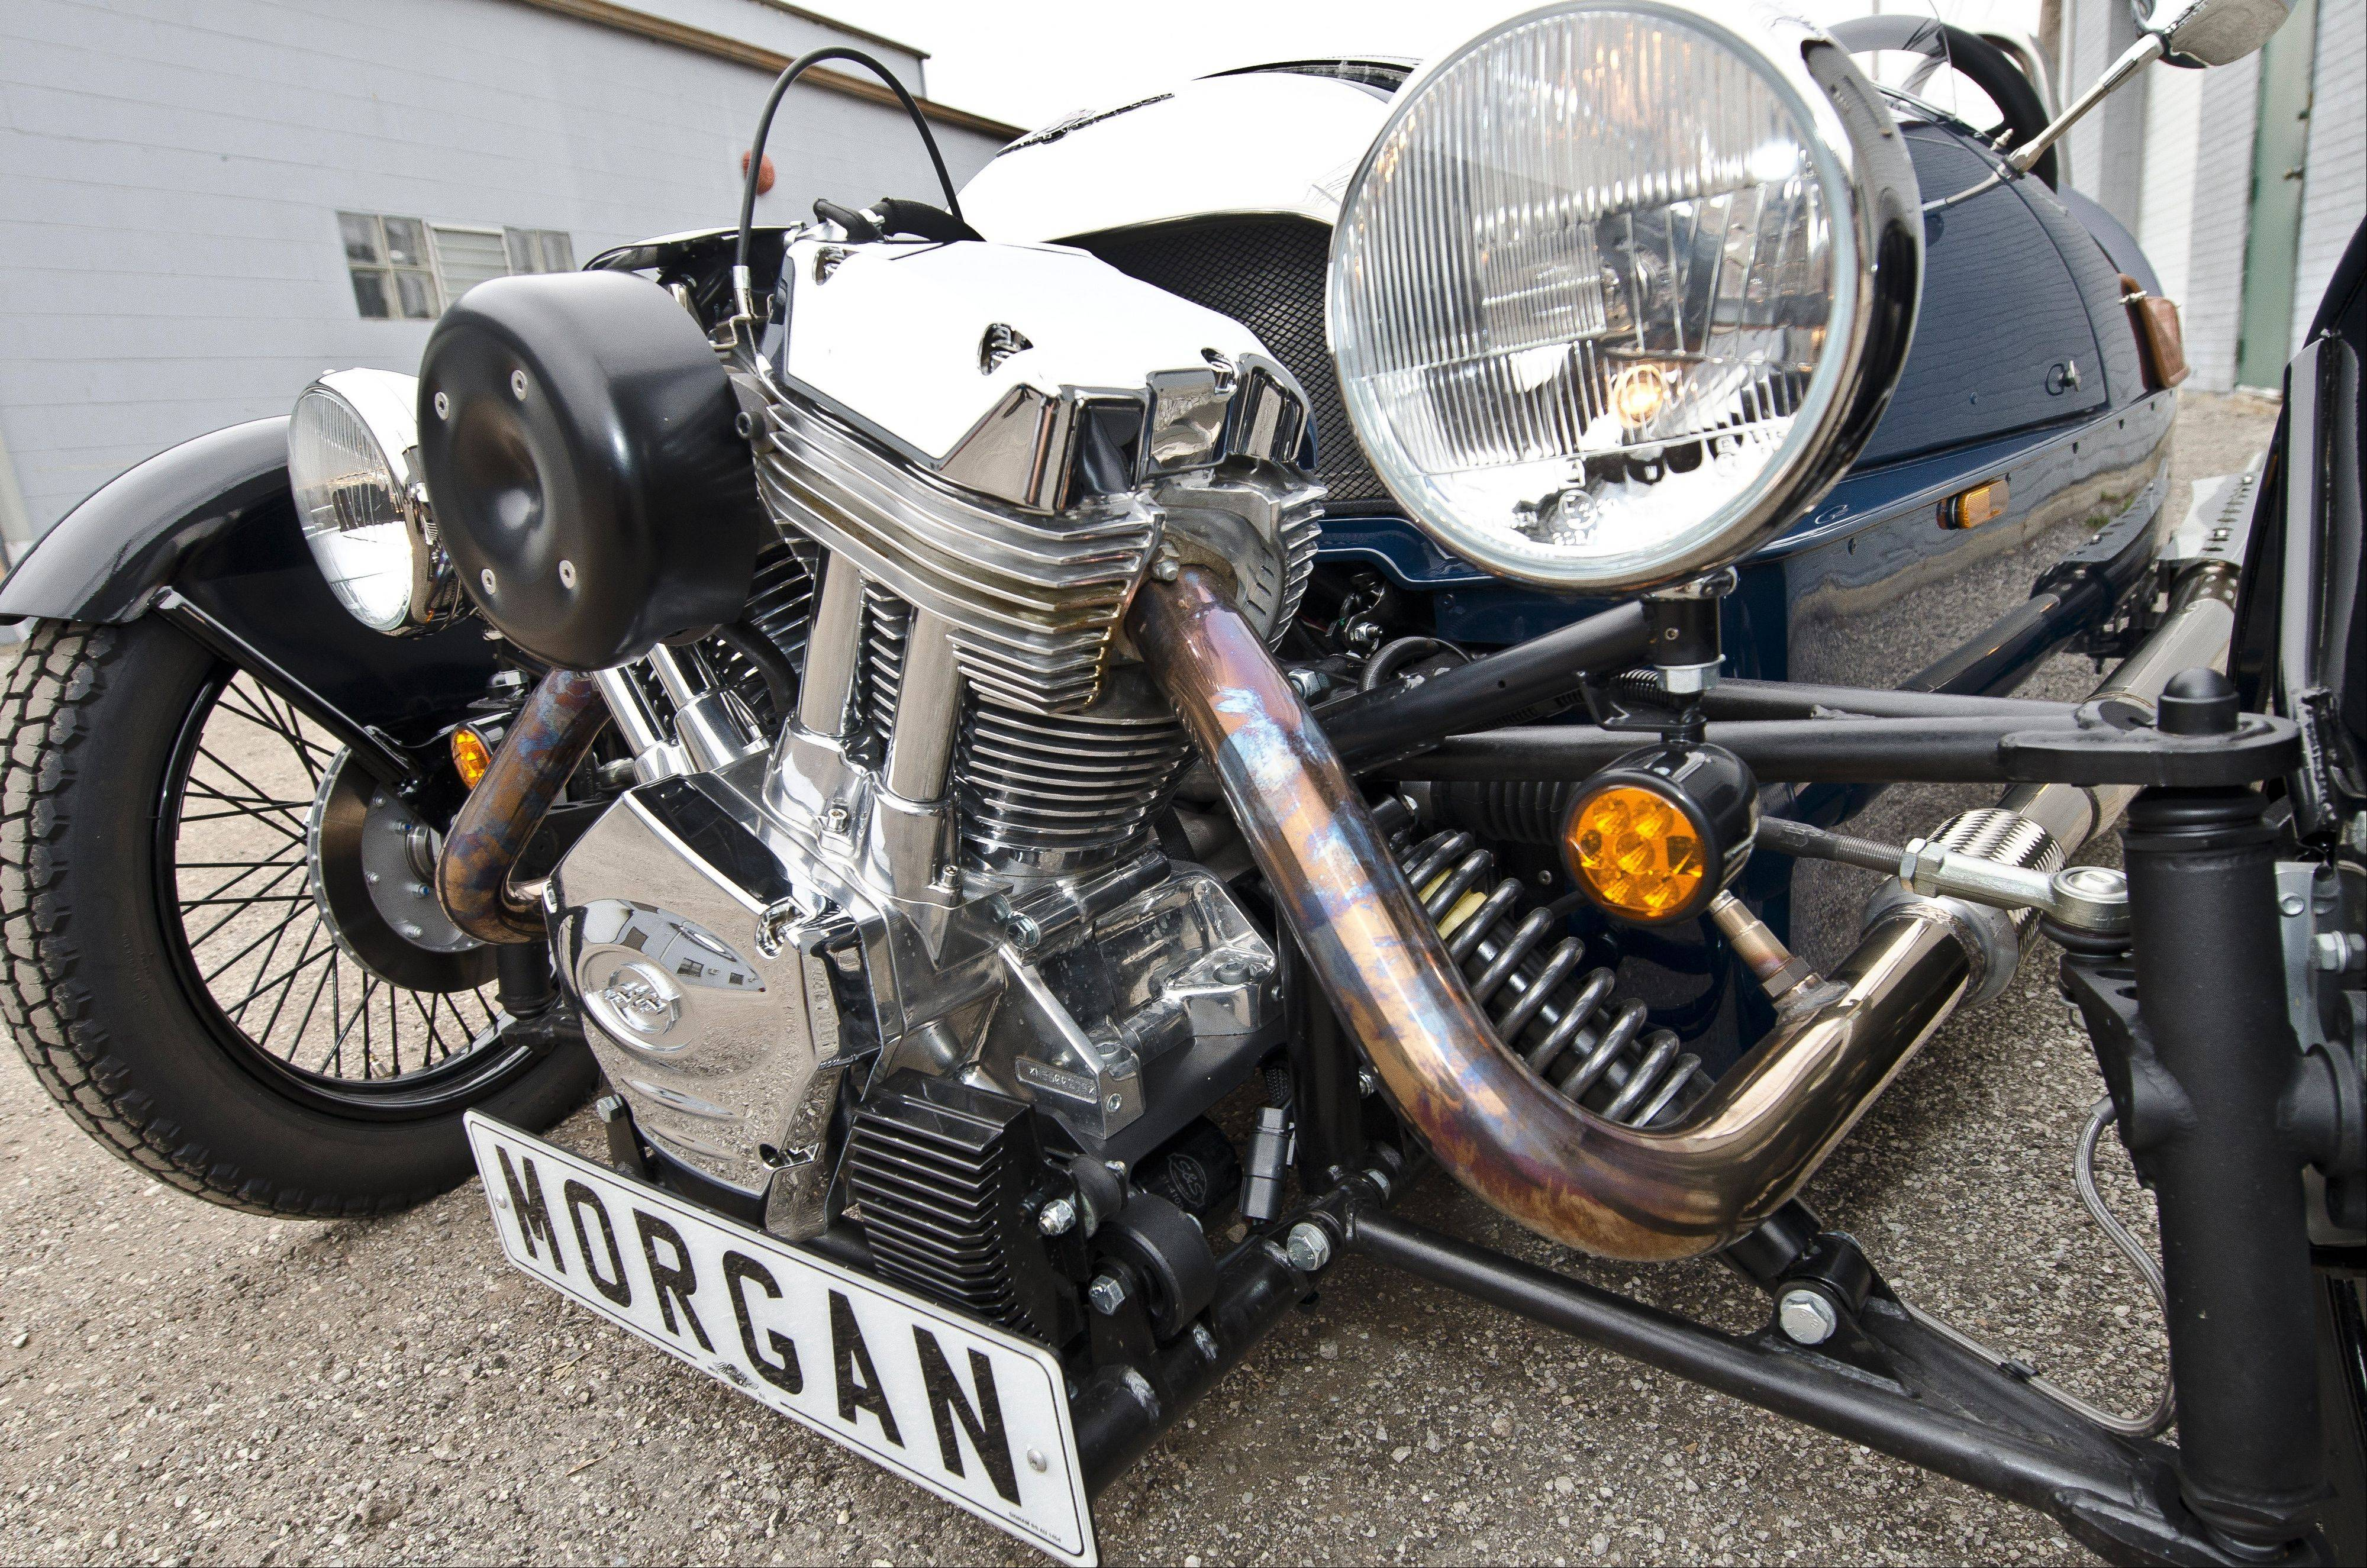 The Morgan is powered by a 2.0-liter motorcycle engine made by S&S Cycle in Wisconsin.